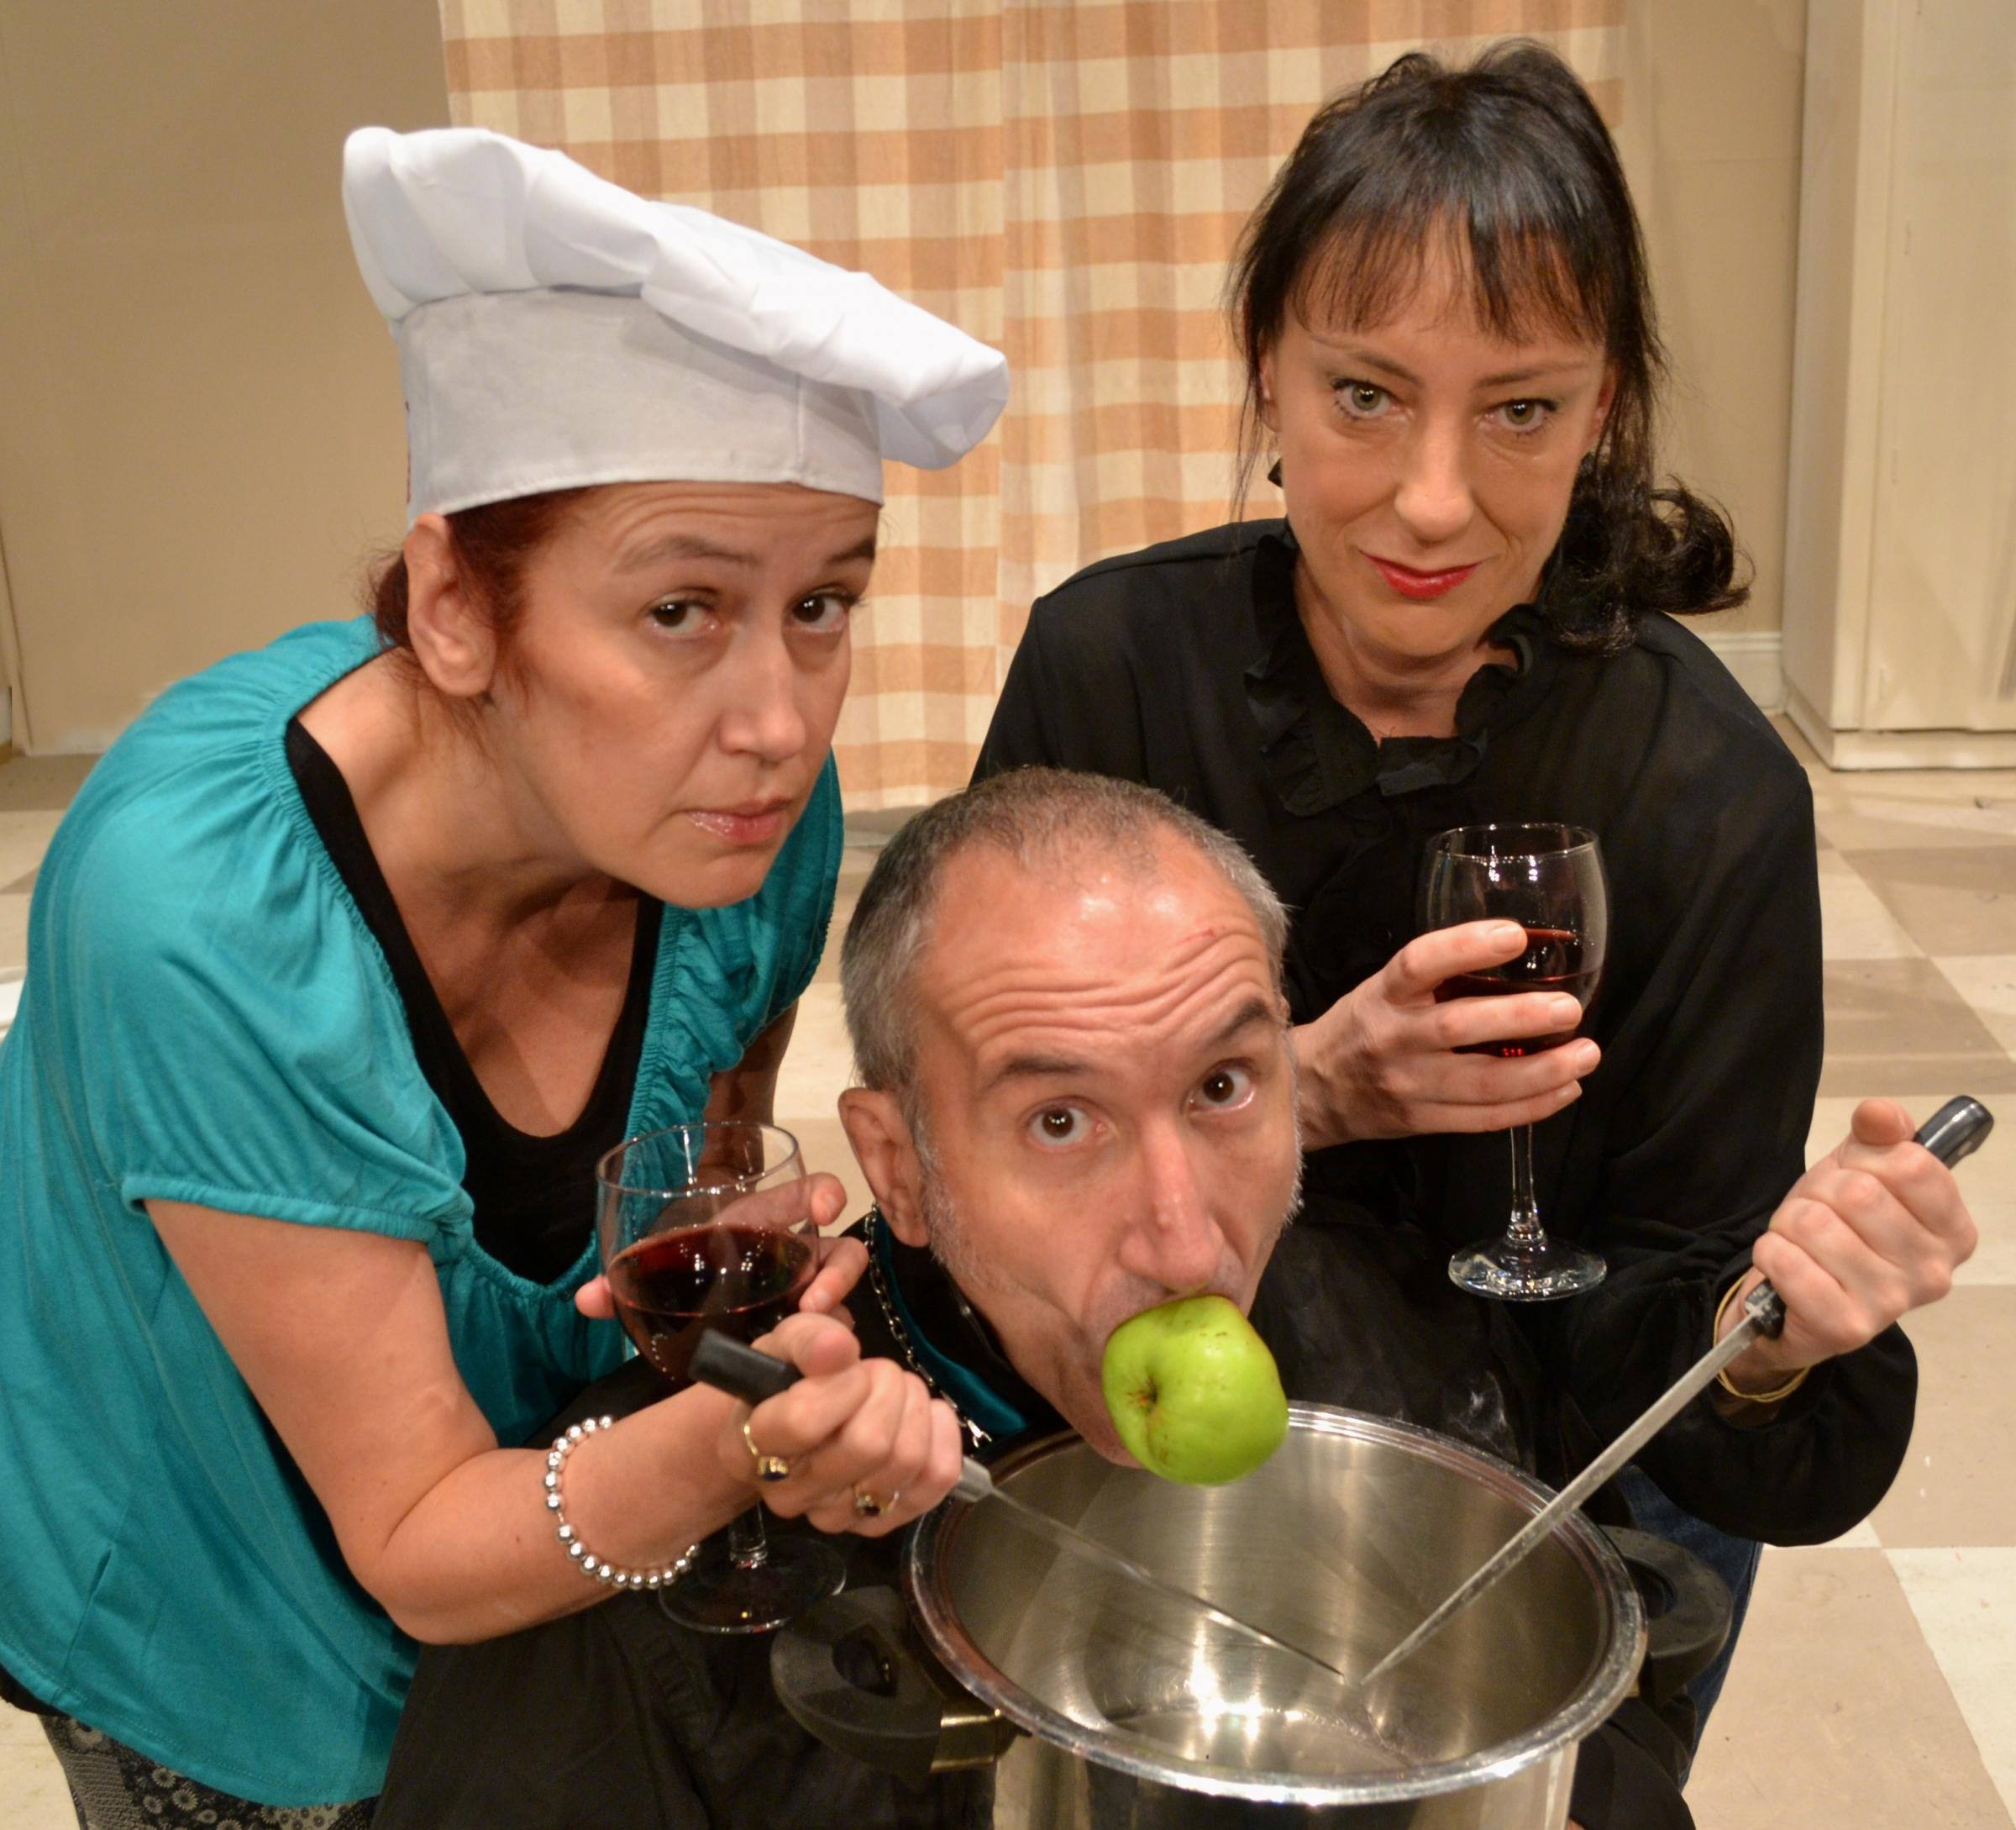 Ready, Steady, Cook! Joanne Hill as Hilary, Rogers Saunders as Kenneth and Dawn Burgess as Laura in The Woman Who Cooked Her Husband